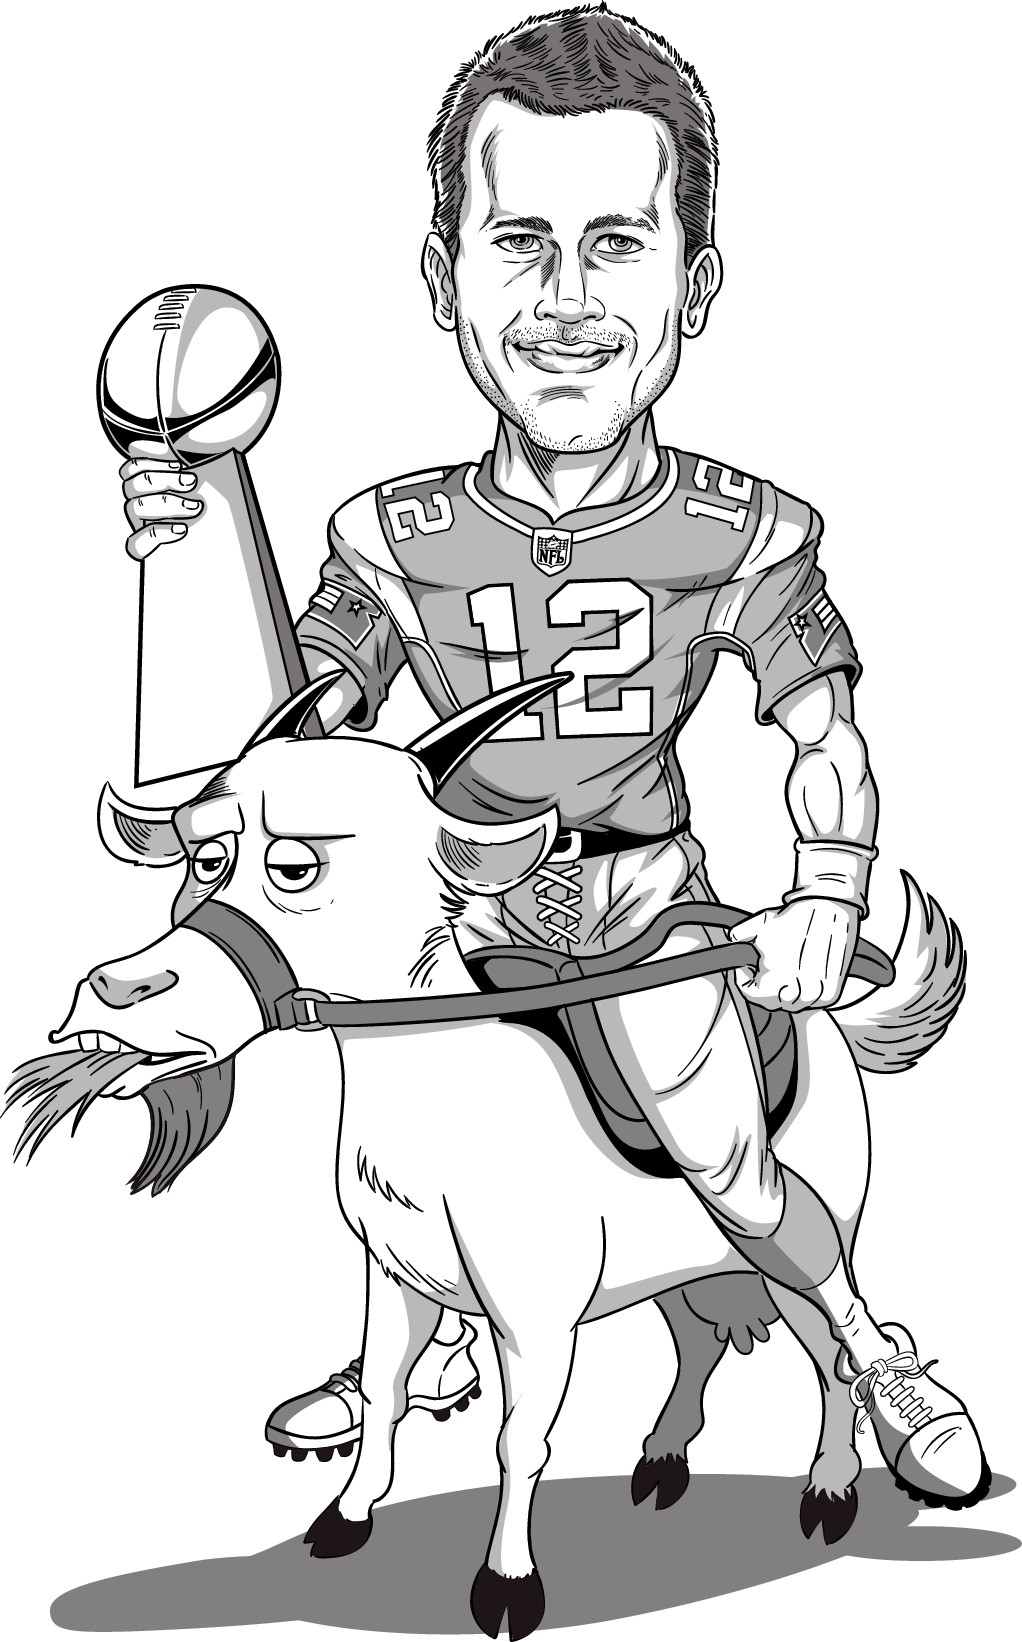 Mr. Brady riding a goat.